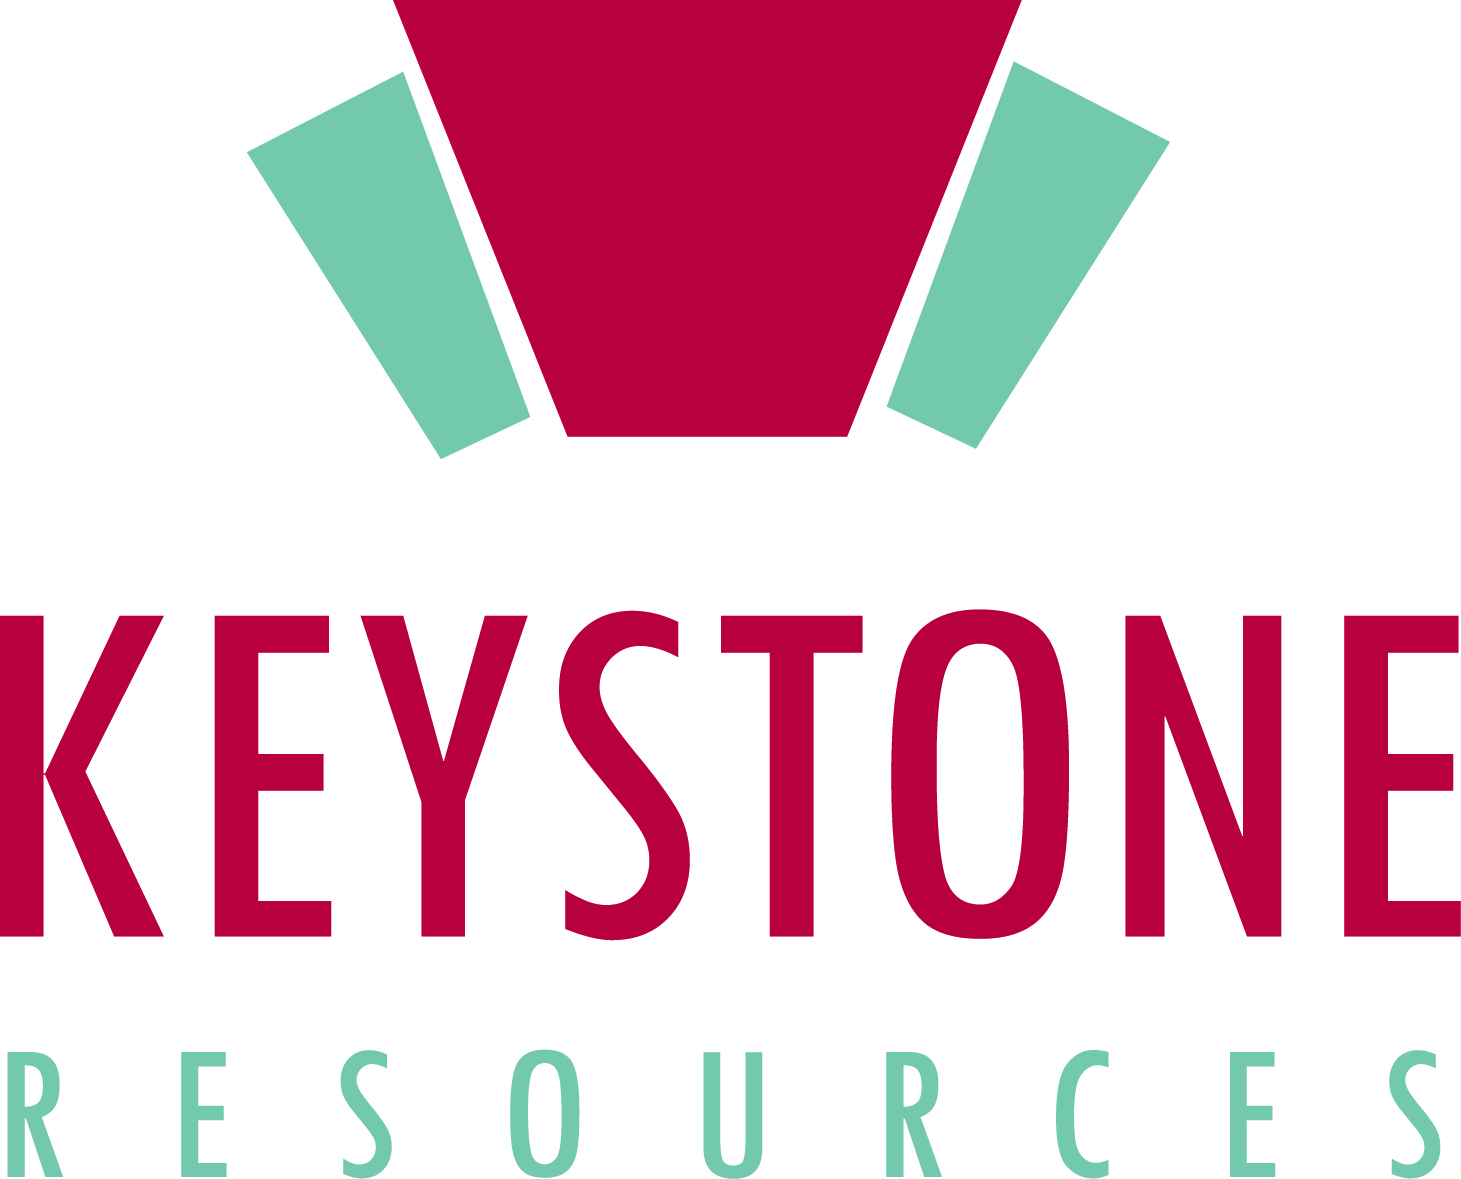 Keystone resources receives its wosb certification by the us julie marie irvin nalp mouspresident and founder of keystone resources xflitez Images